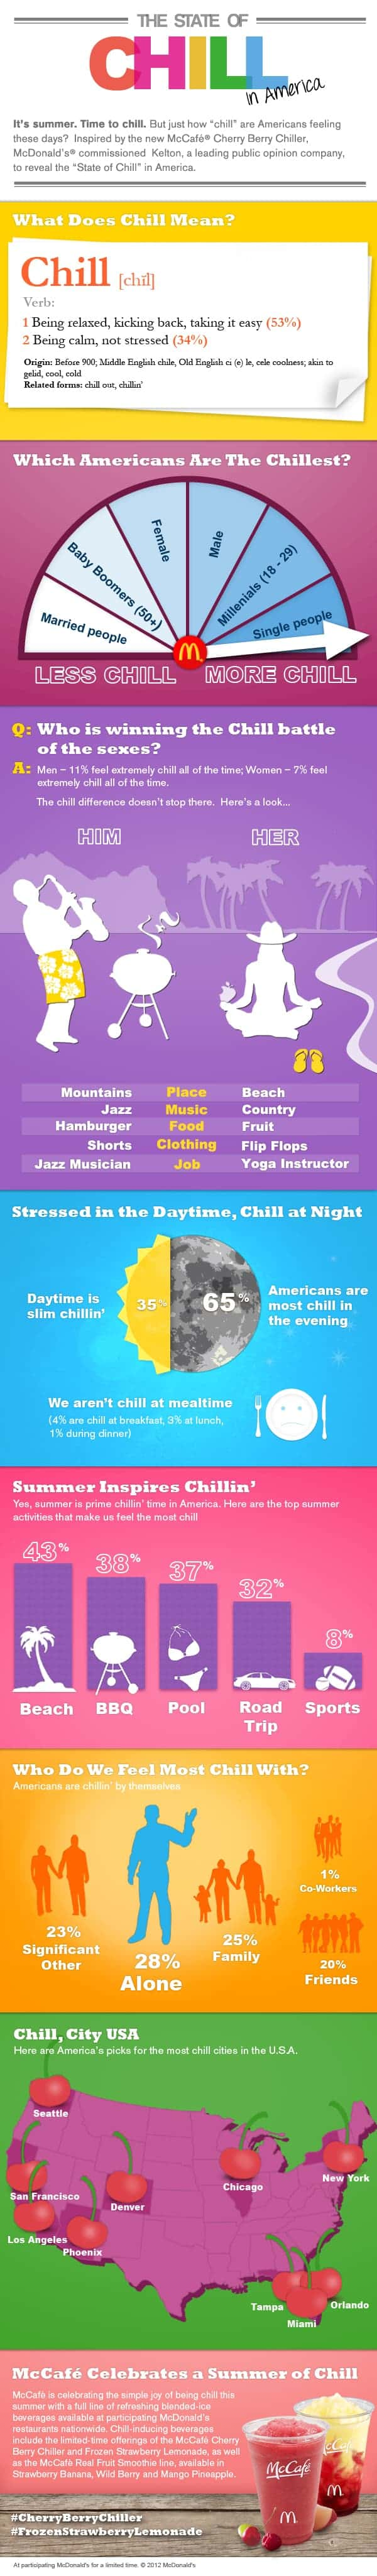 The State of Chill in America [infographic]